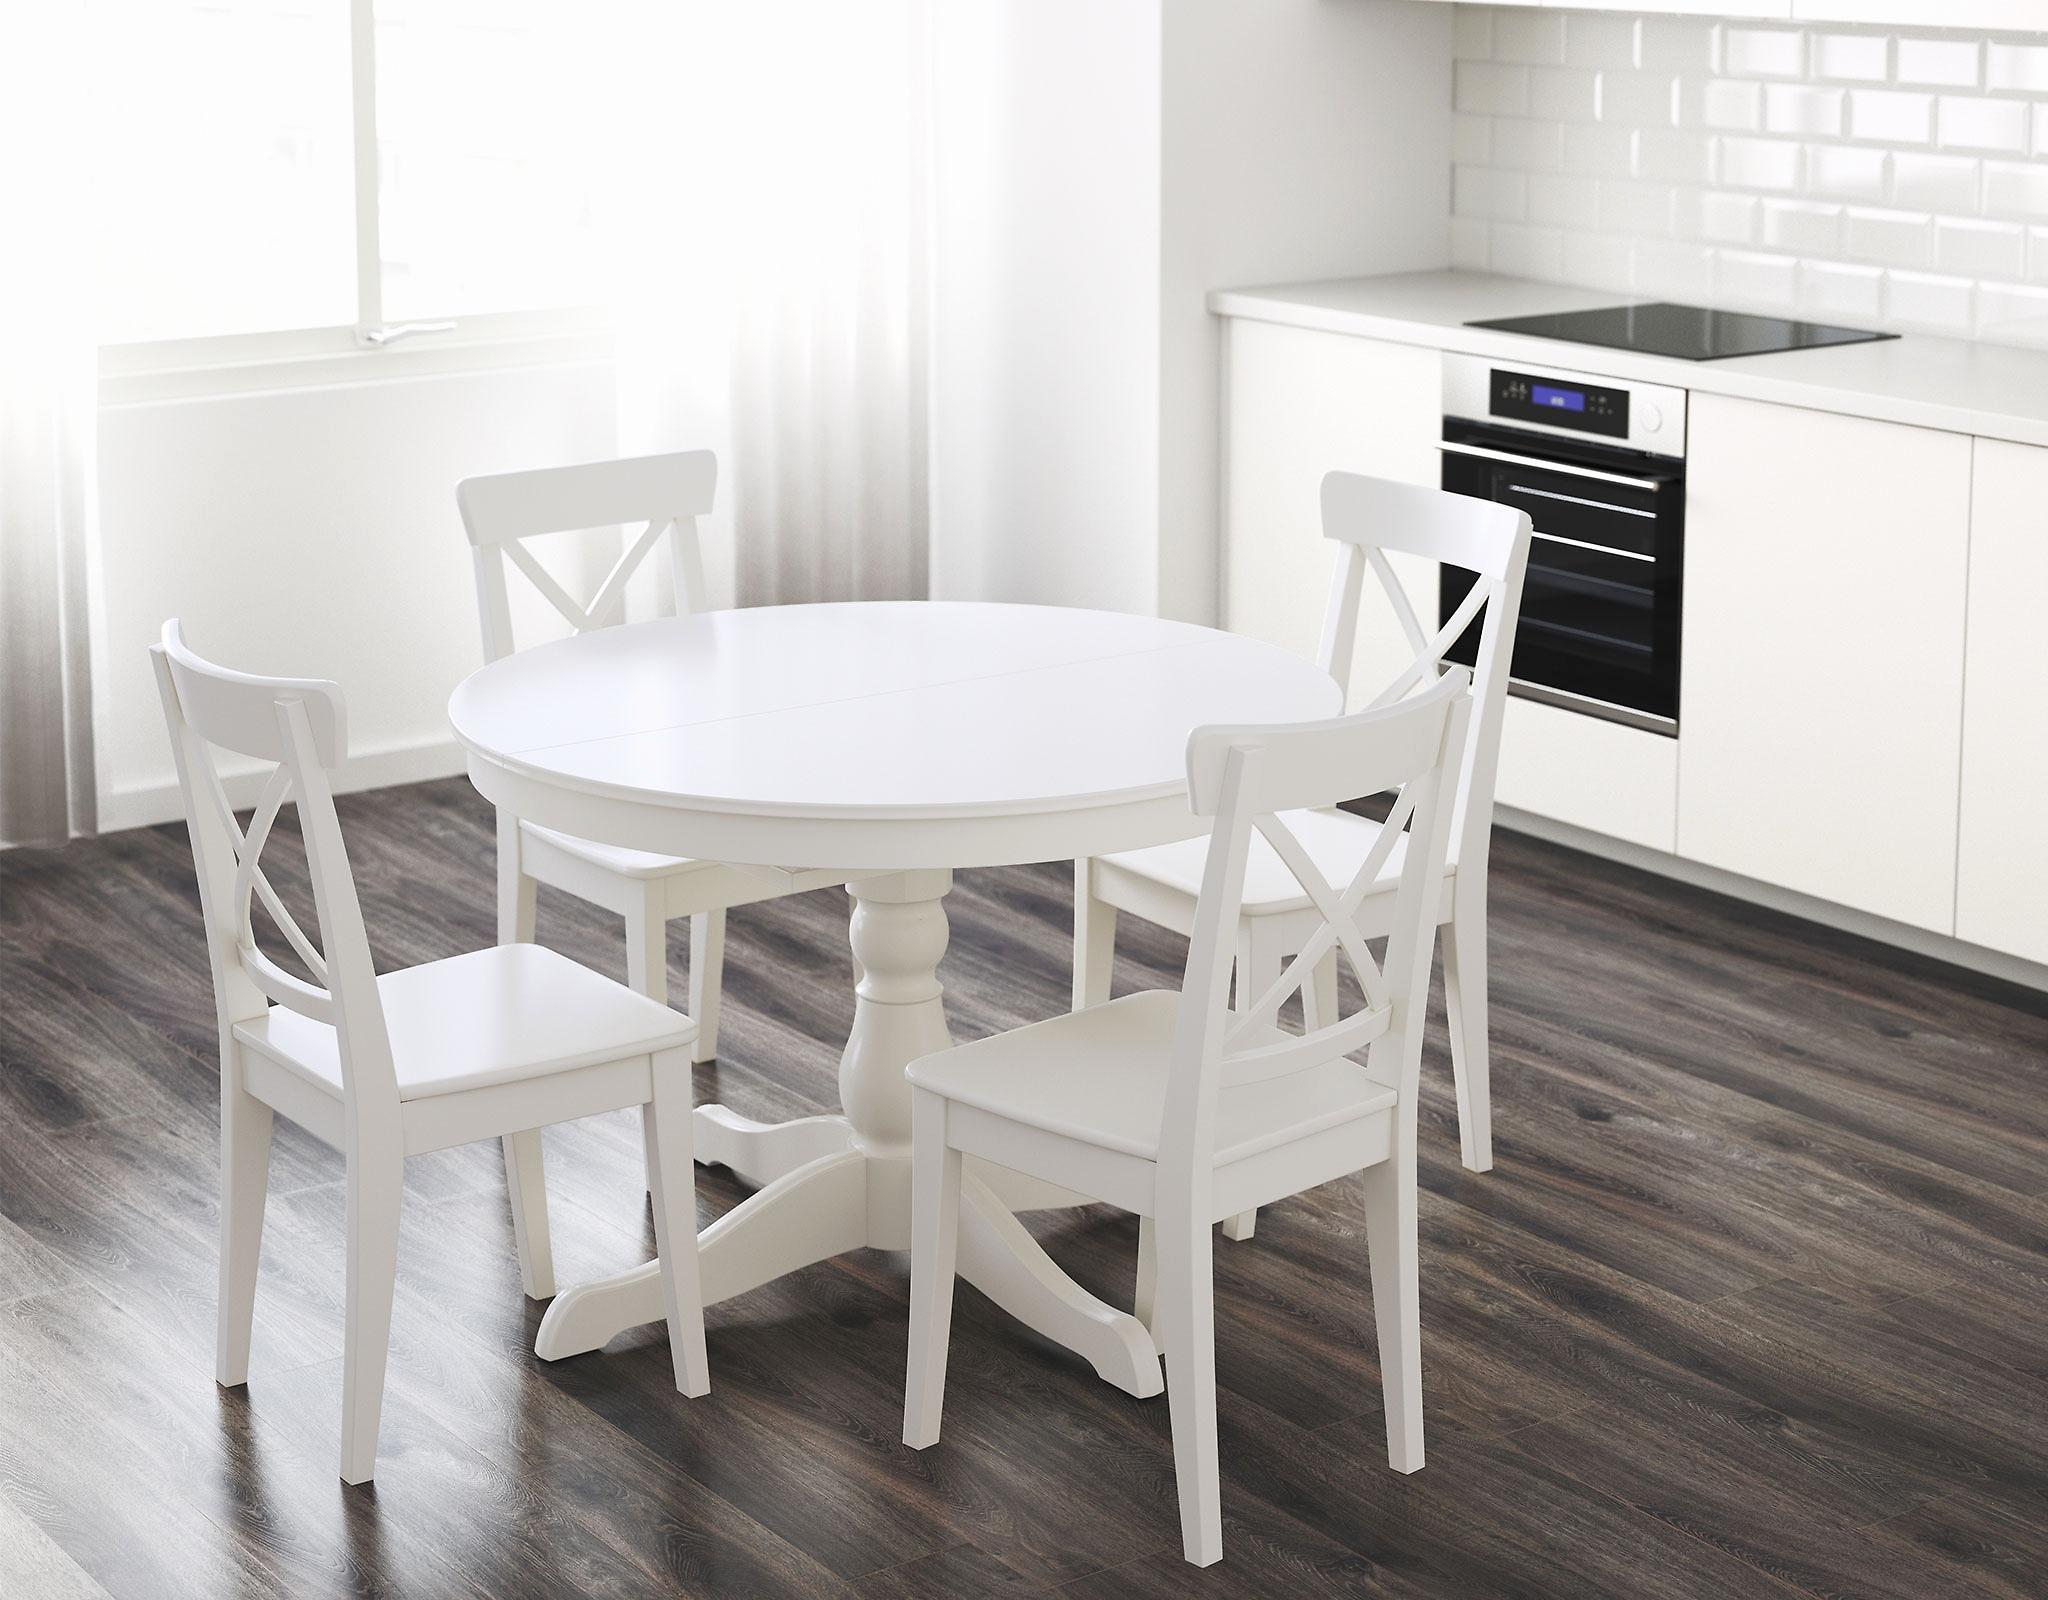 Image of: White Dining Table Set Ikea